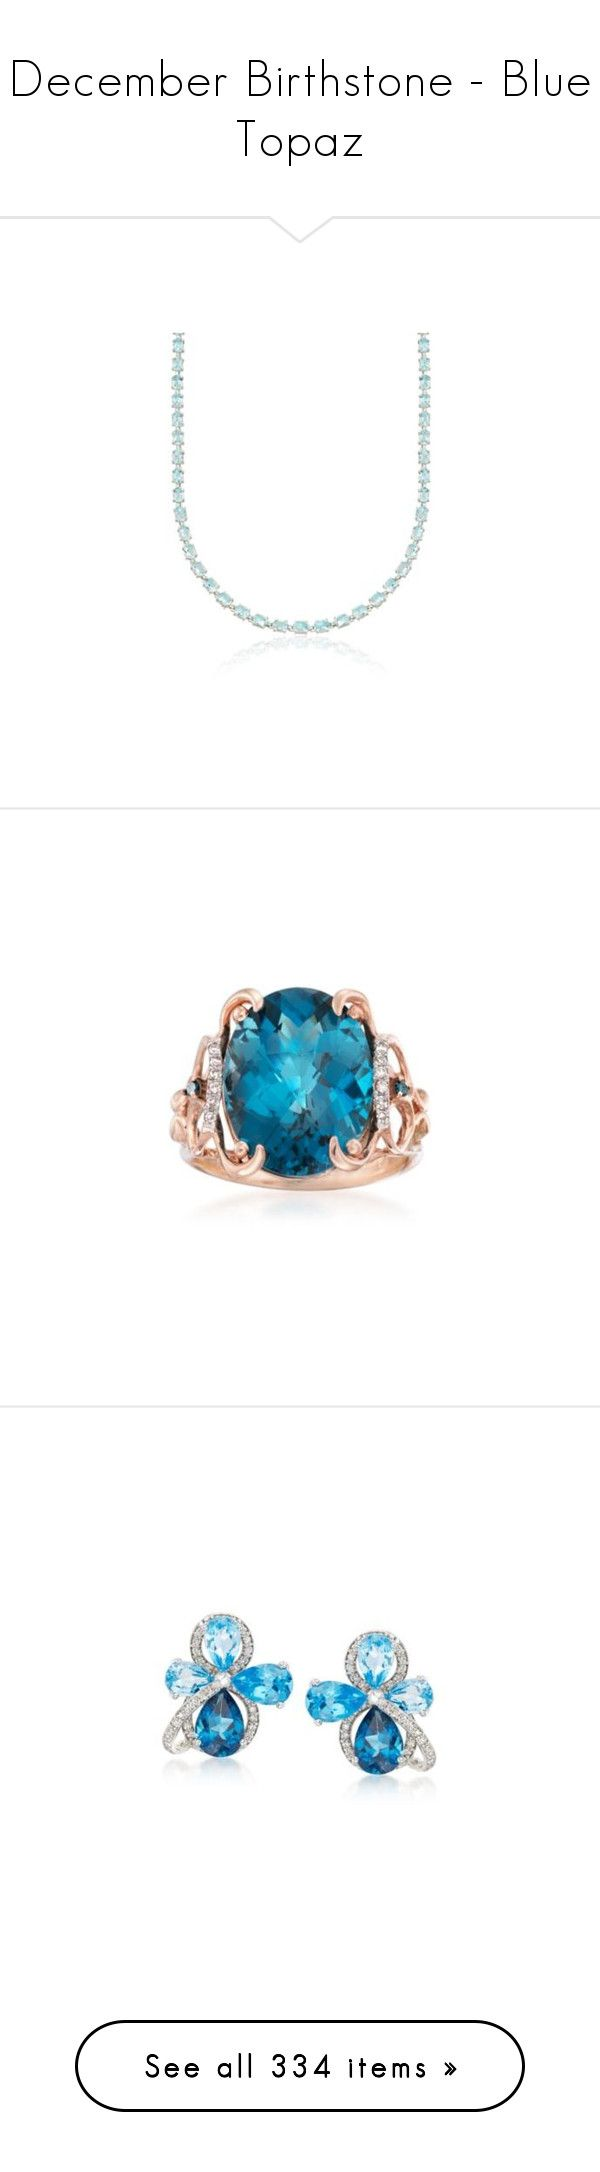 """December Birthstone - Blue Topaz"" by rosssimons ❤ liked on Polyvore featuring jewelry, necklaces, sterling silver jewellery, birthday necklace, sterling silver jewelry, birthday jewelry, sterling silver necklace, rings, oval london blue topaz ring and oval ring"